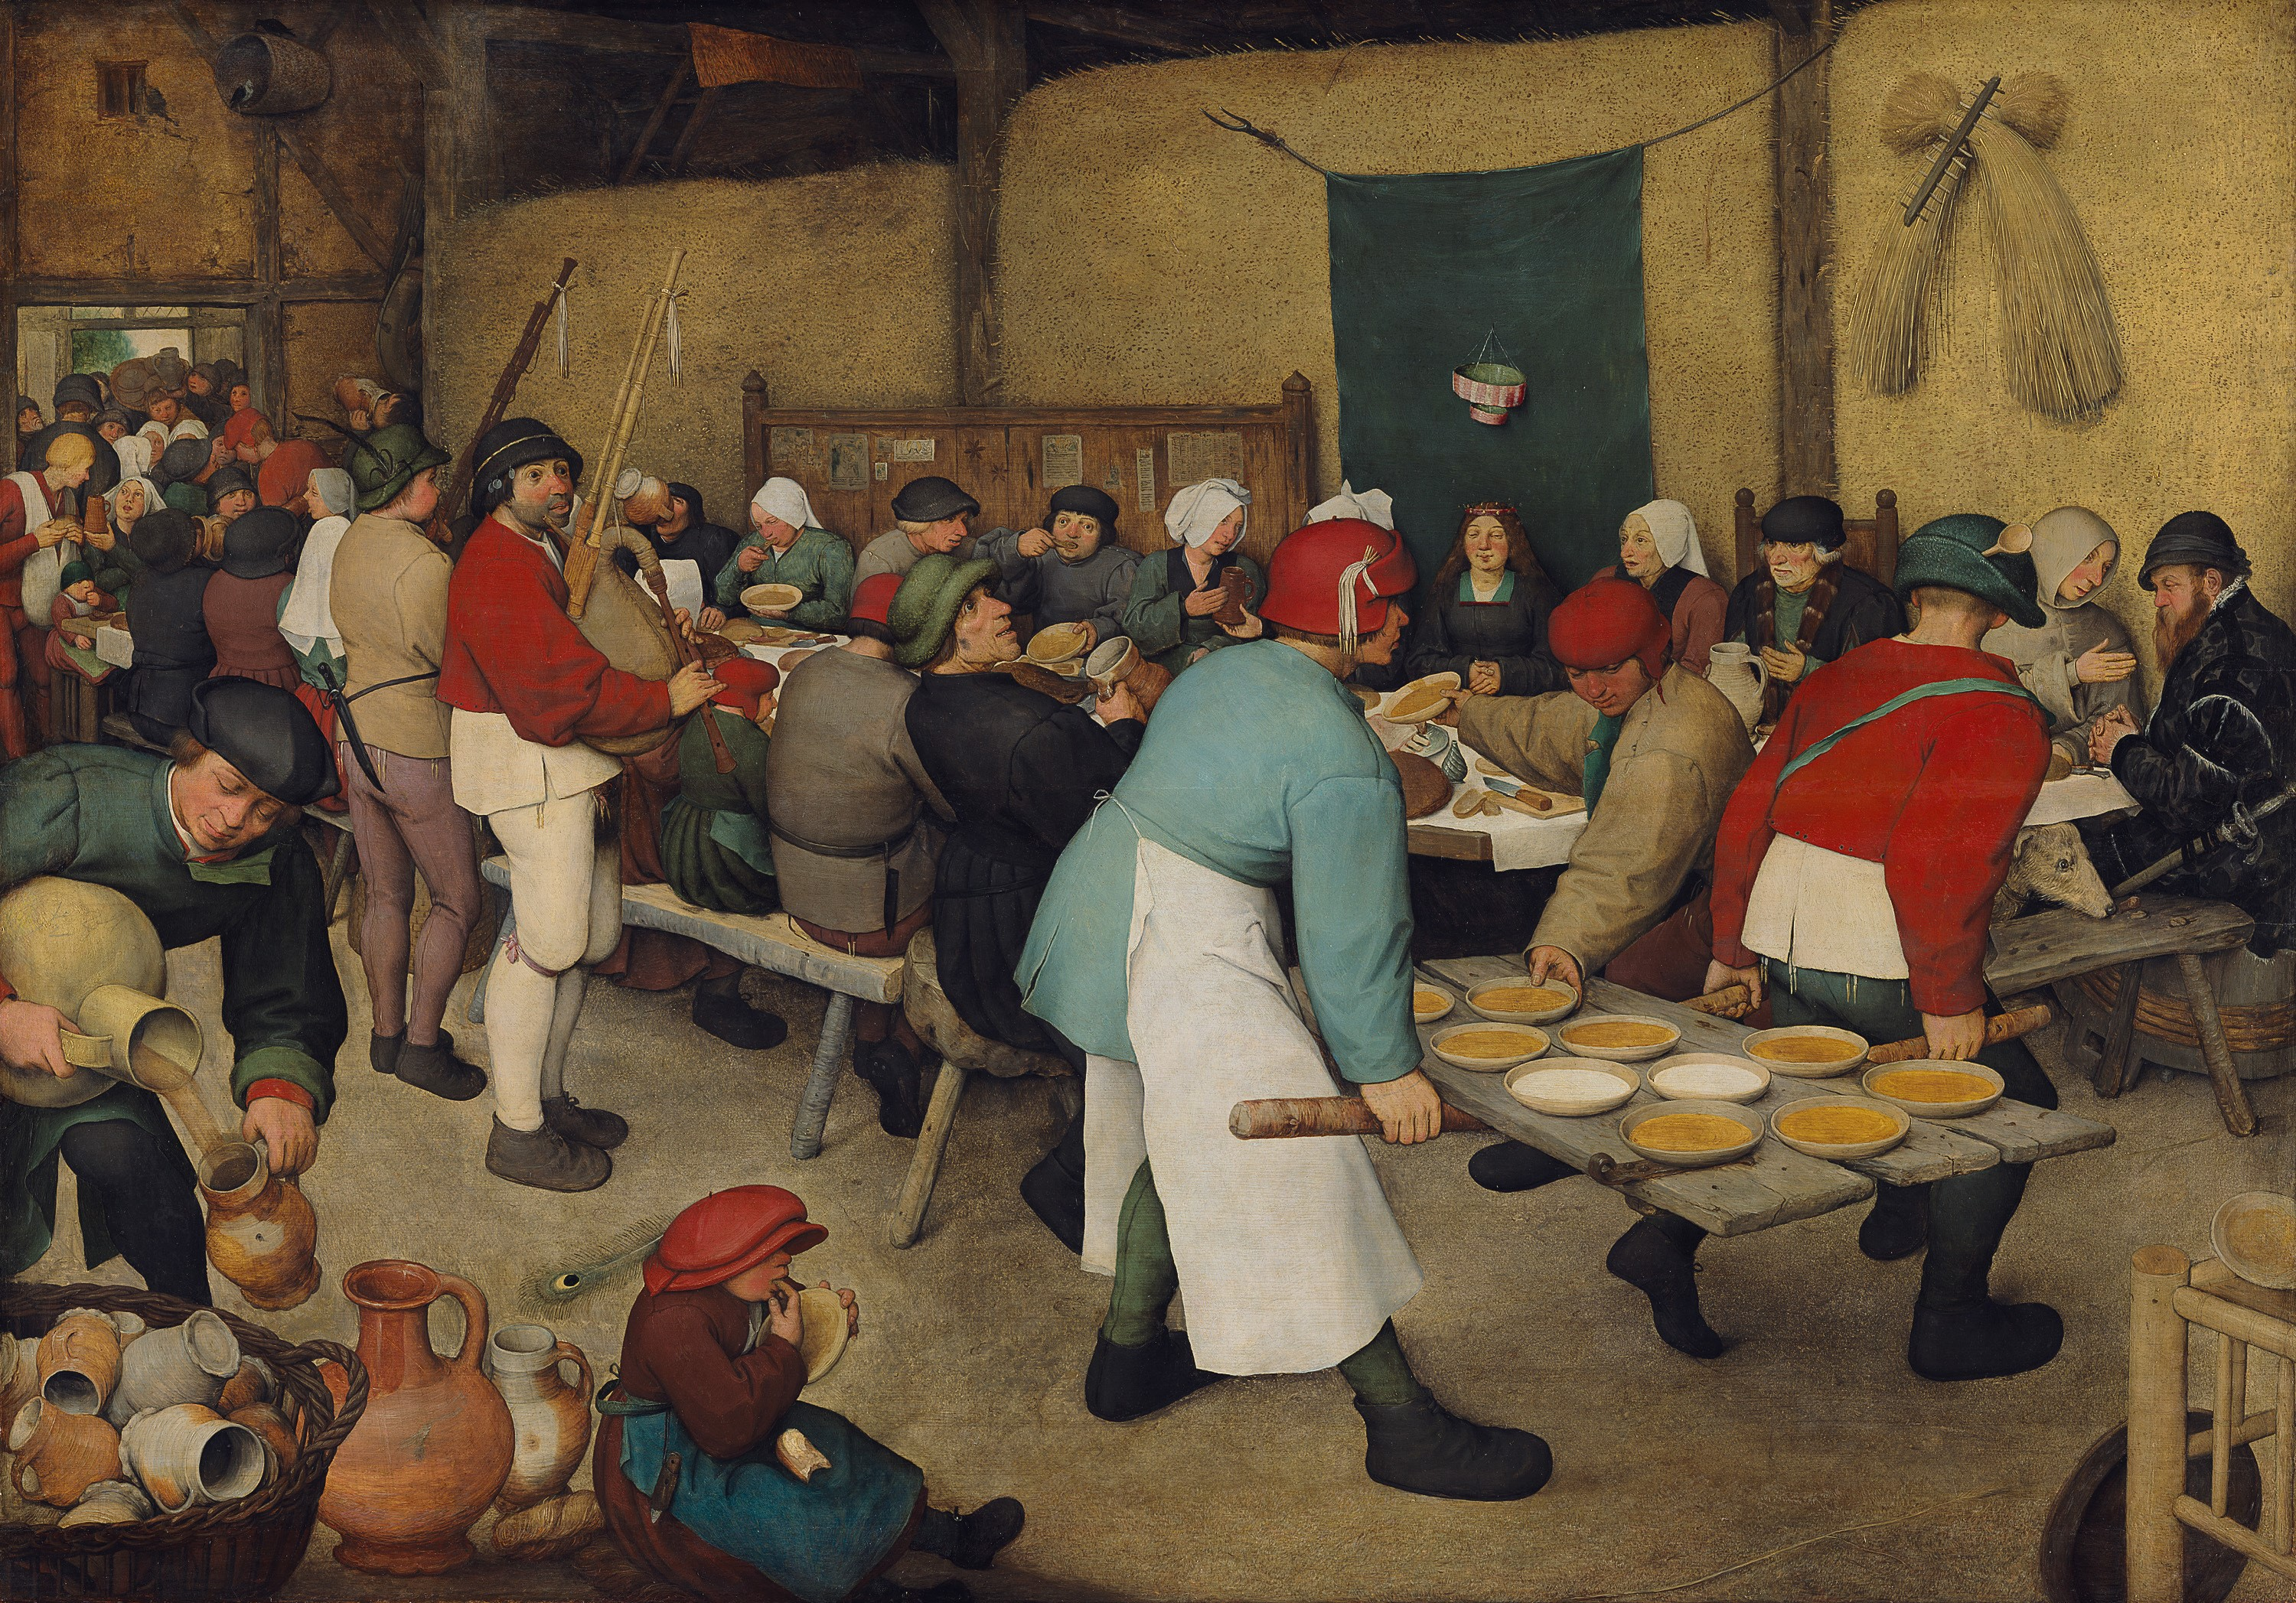 The Peasant Wedding is a 1567 painting by the Flemish Renaissance painter and printmaker Pieter Bruegel the Elder, one of his many depicting peasant life.